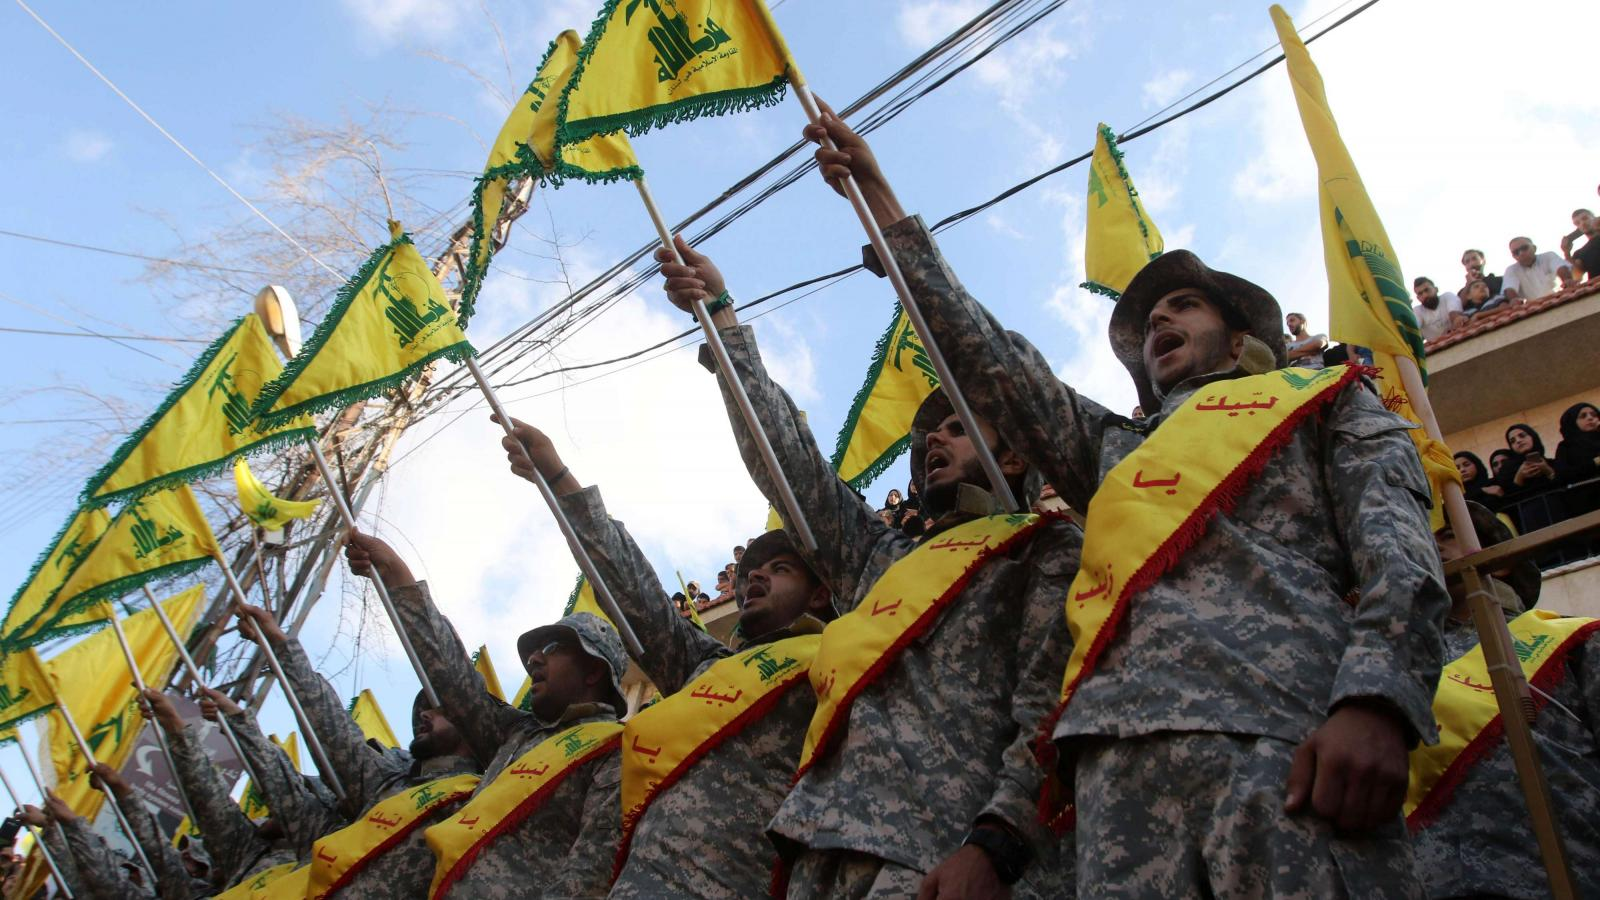 Following Iraqi Shi'ite militias, Hezbollah shows up in Iran 'for flood relief'